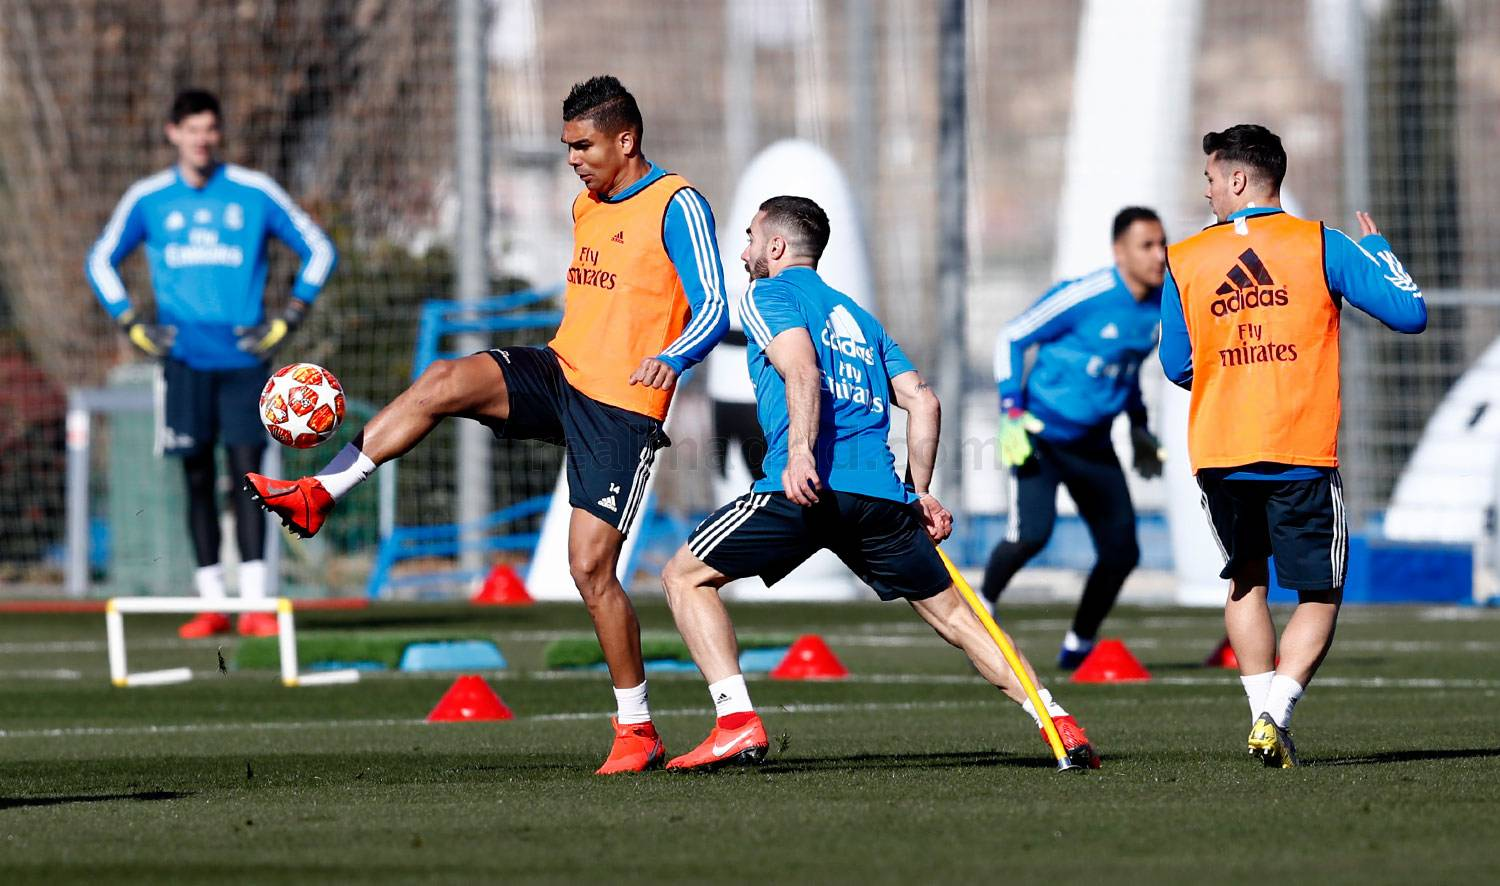 Real Madrid - Entrenamiento del Real Madrid - 11-02-2019